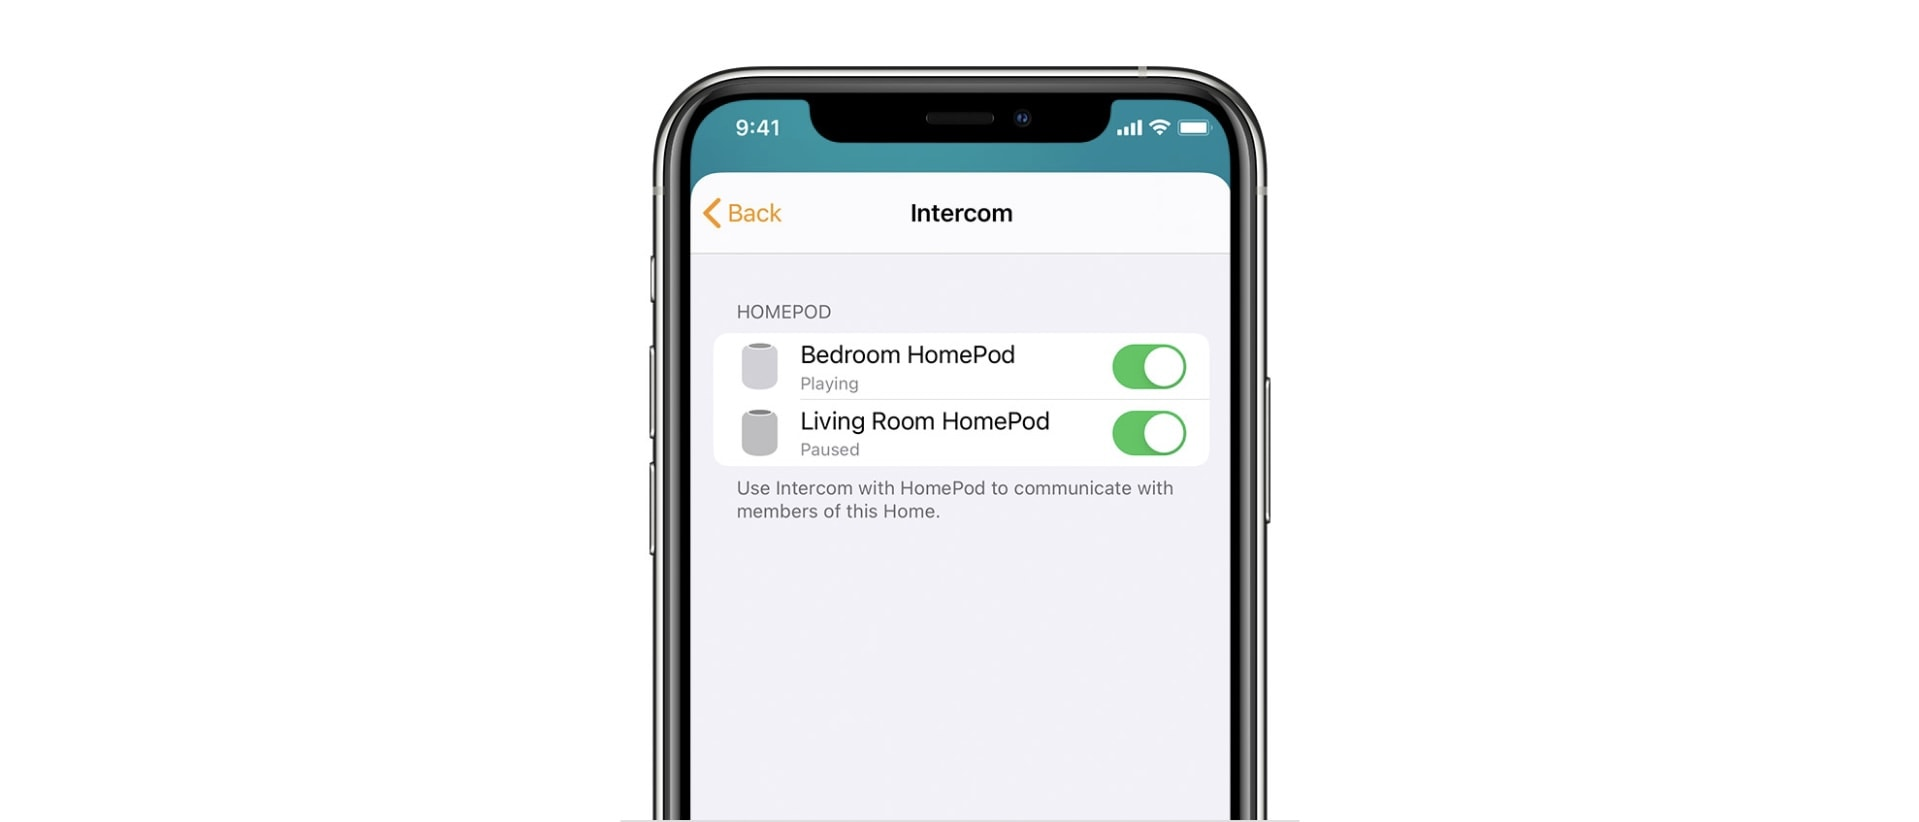 How to use Intercom with HomePods: First, you must enable Intercom inside the Home app